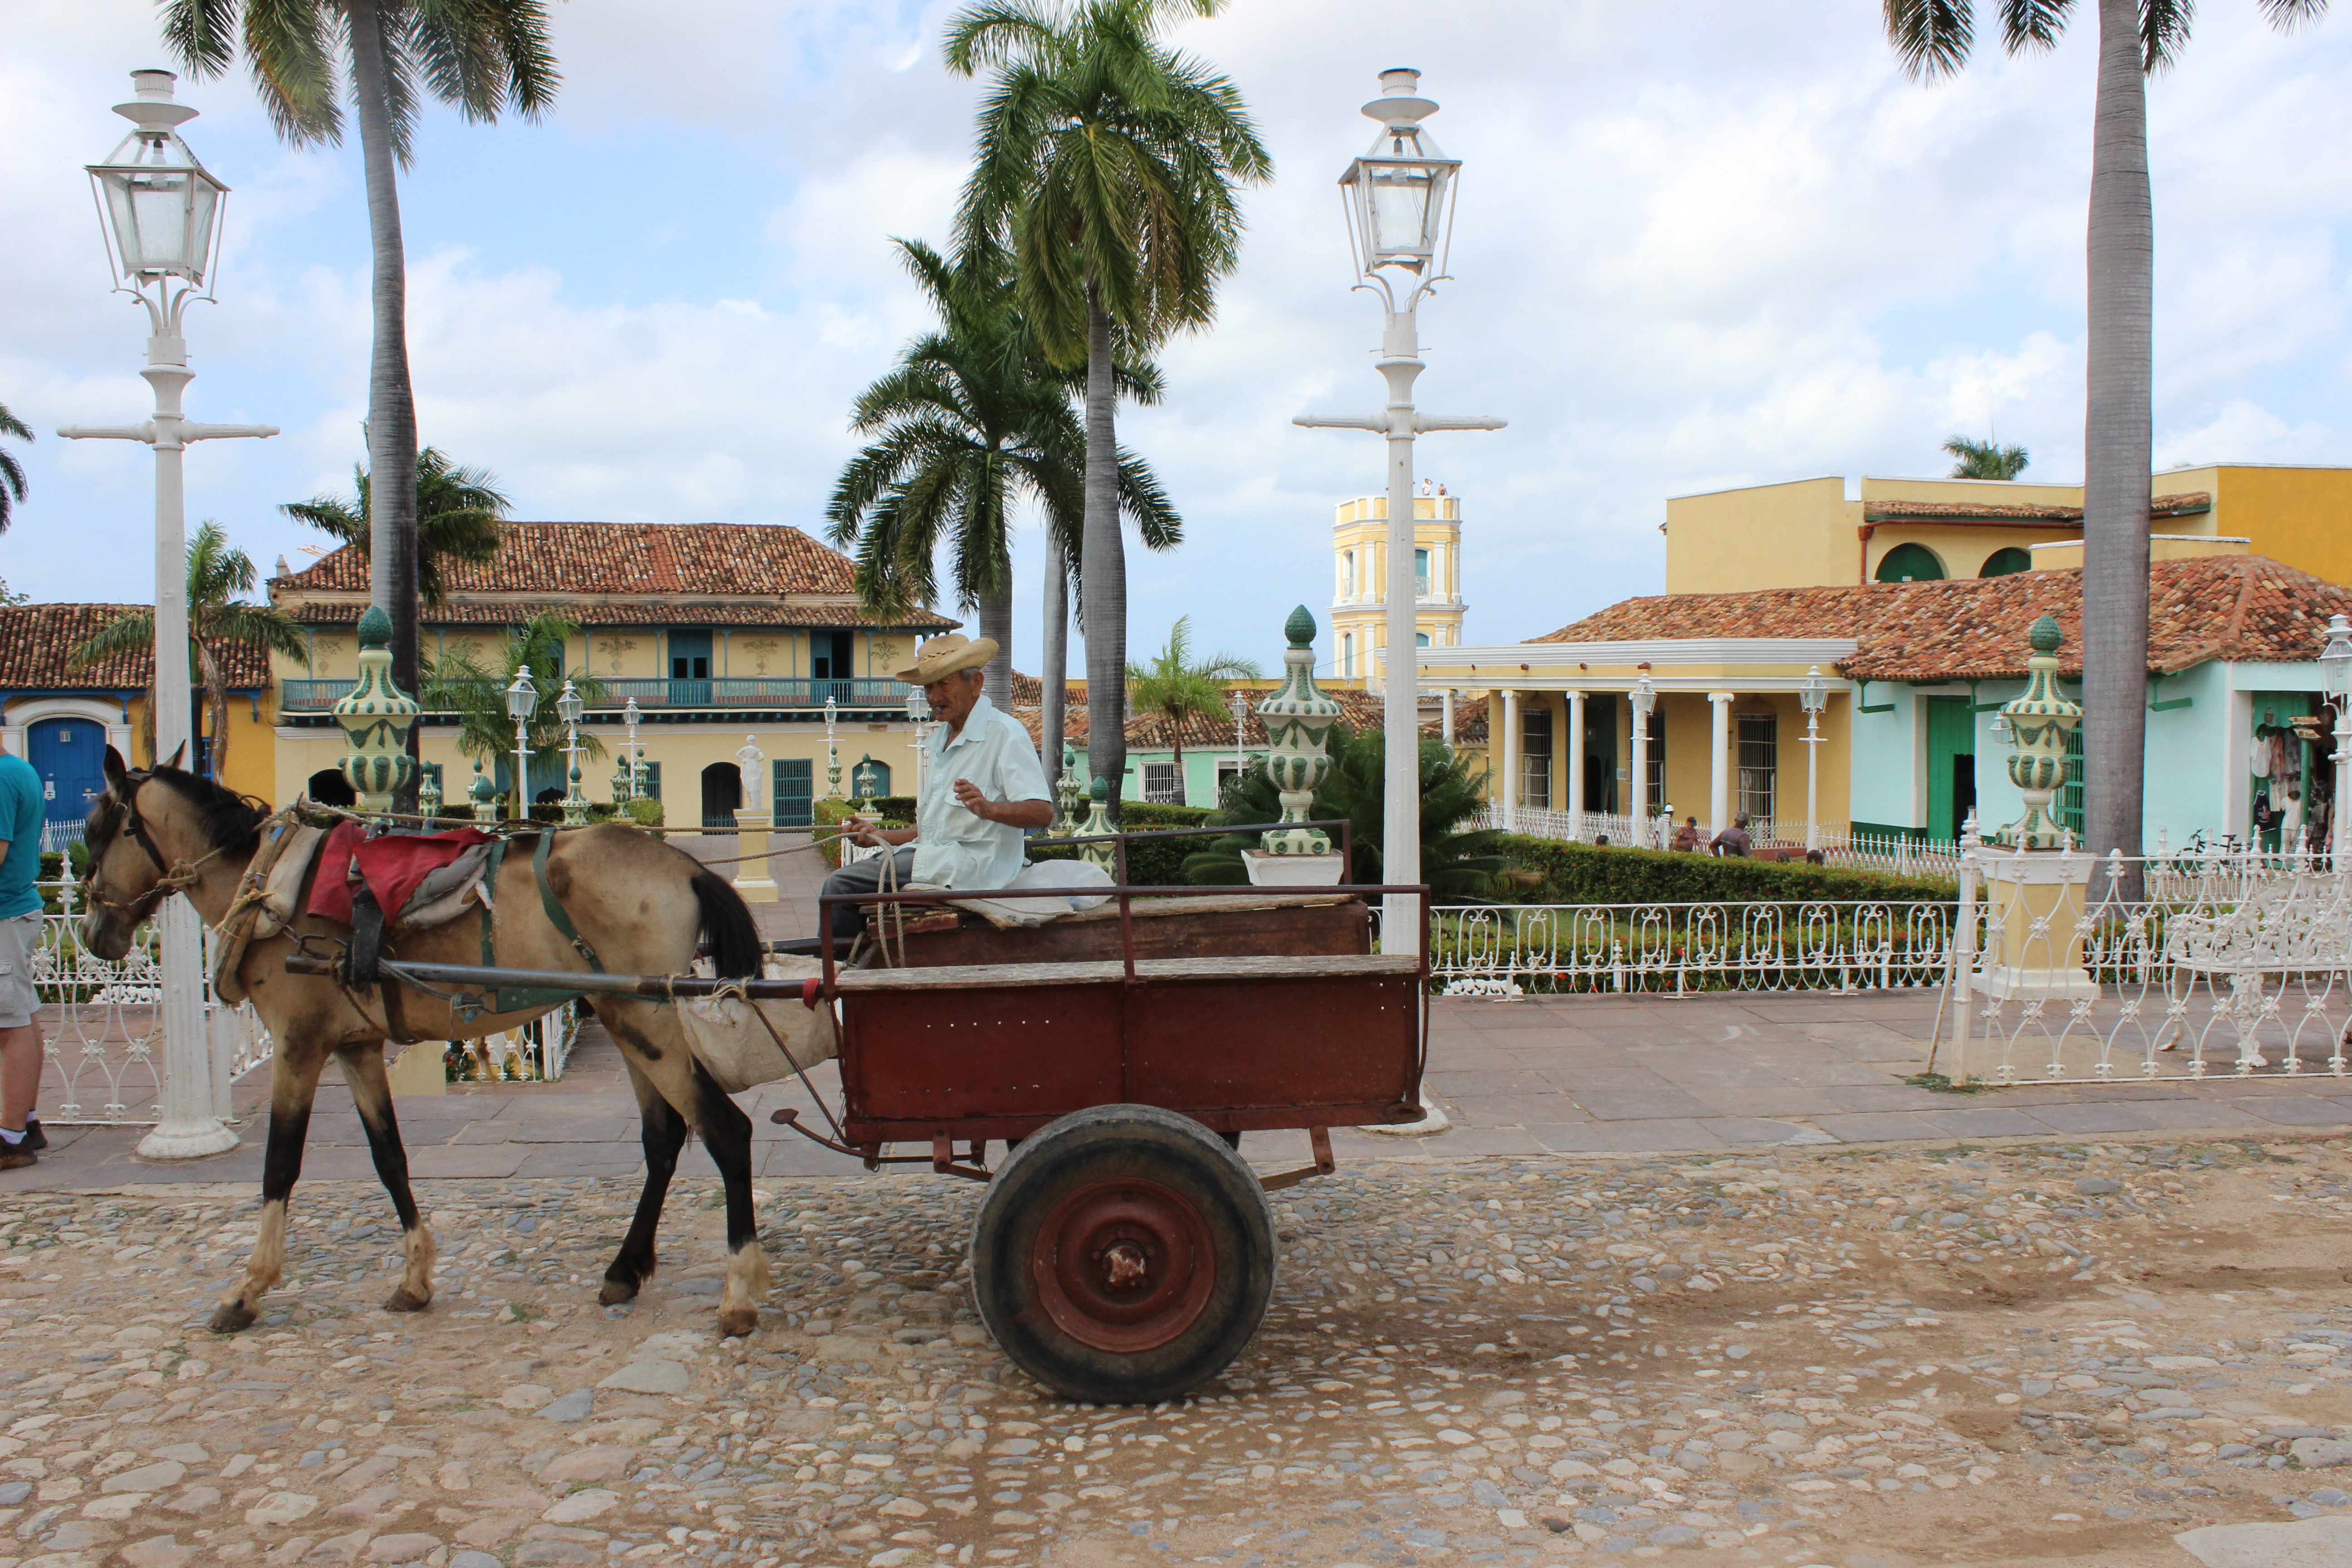 A guajiro, or rural man drives a horse drawn carriage past the Plaza Mayor in Trinidad, Cuba.